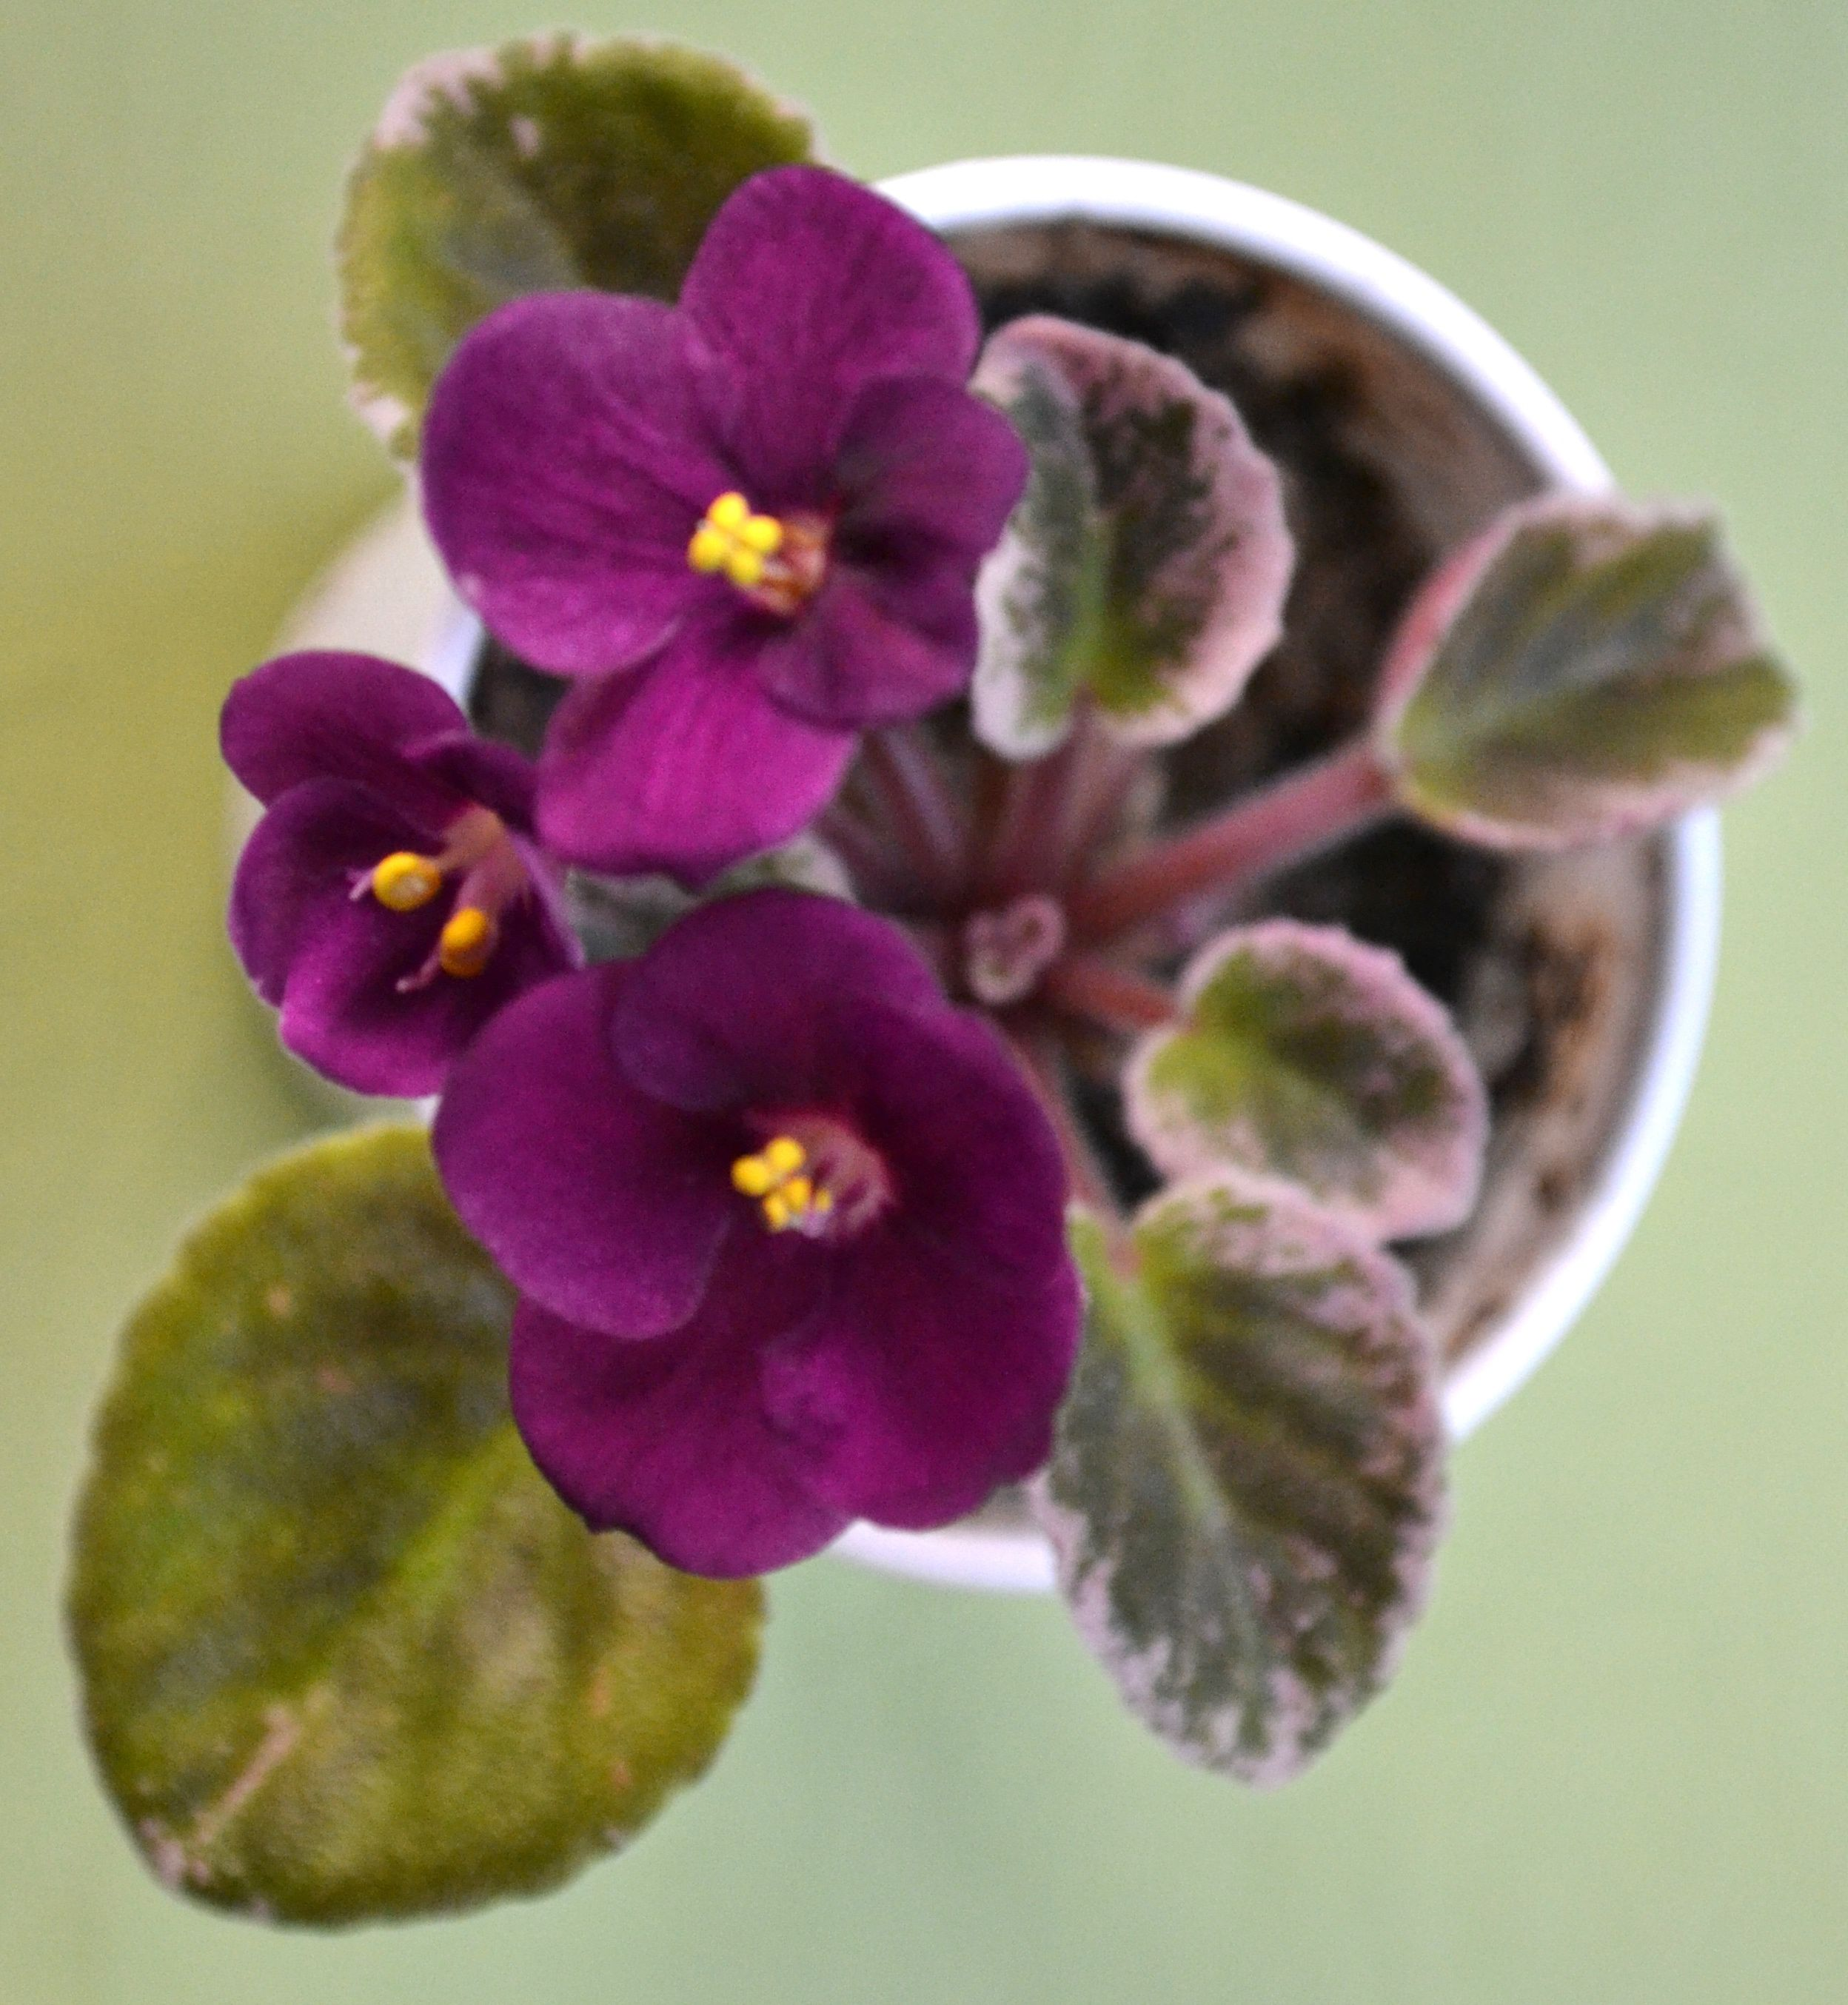 Robs Macho Devil: This is a Semi miniature known as robs macho devil. The flowers are dark red in color and pansy shaped. The flowers are semi-double in type.  The leaves are medium-dark green and white in color with variegation. The plant was hybridized by R. Robinson in 1990.